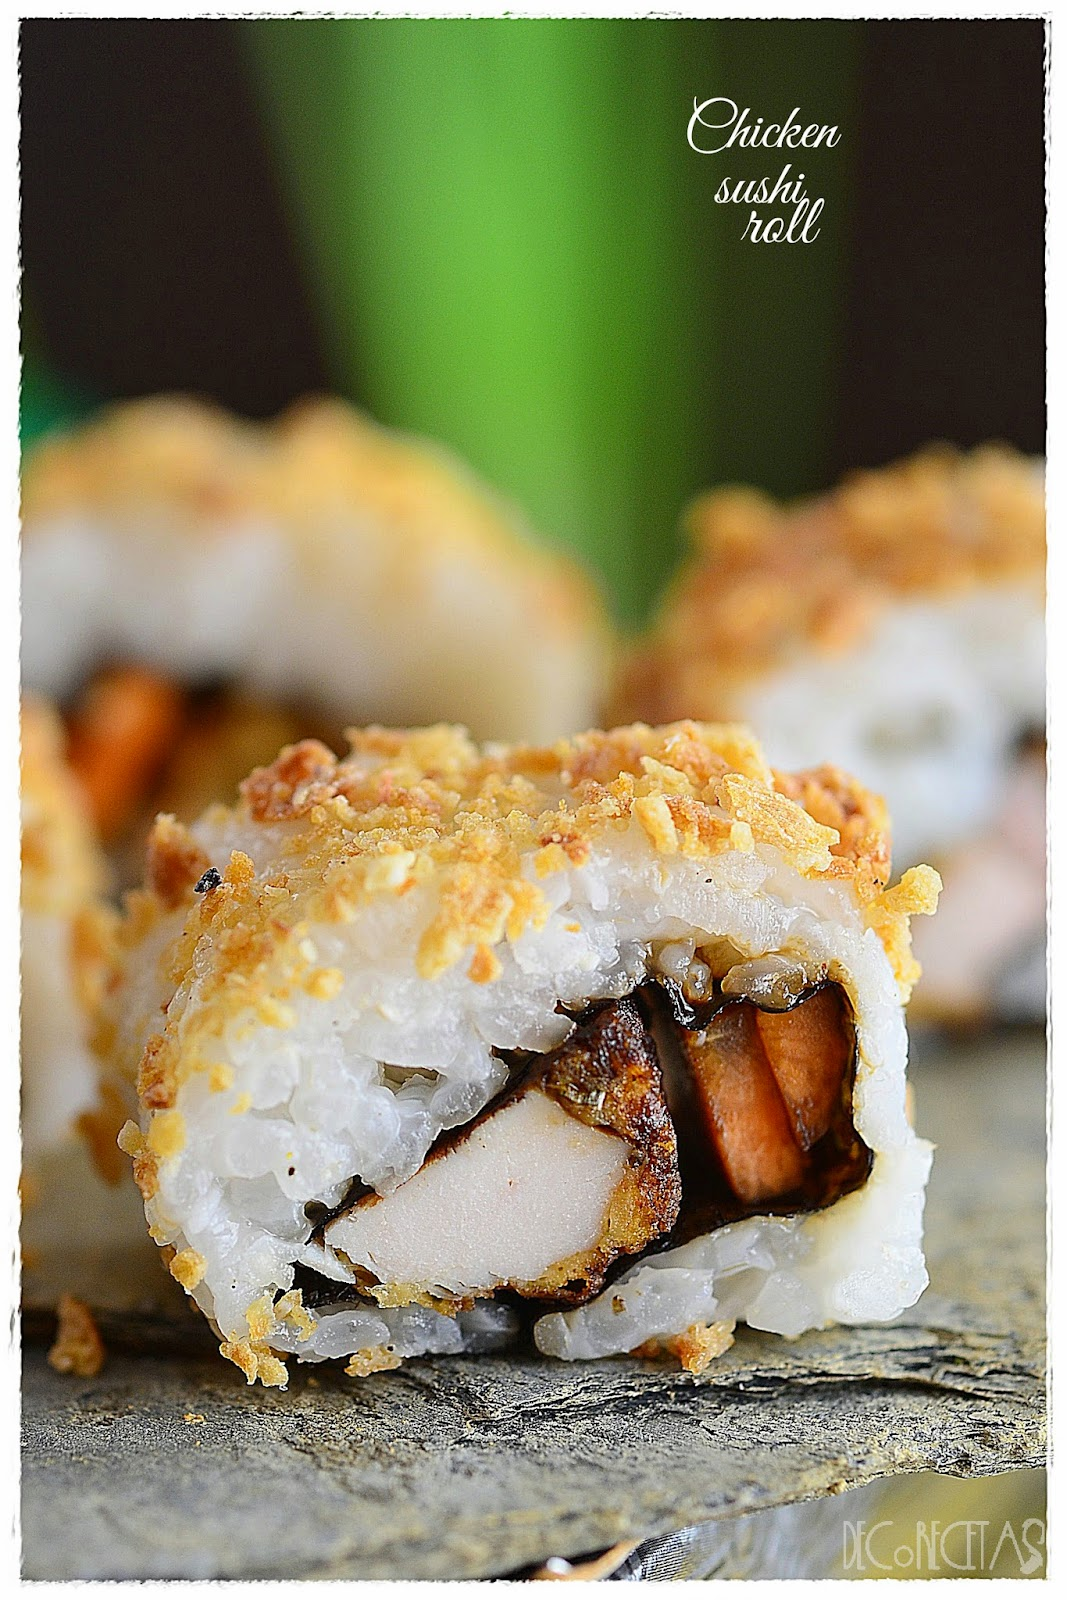 Chicken sushi roll